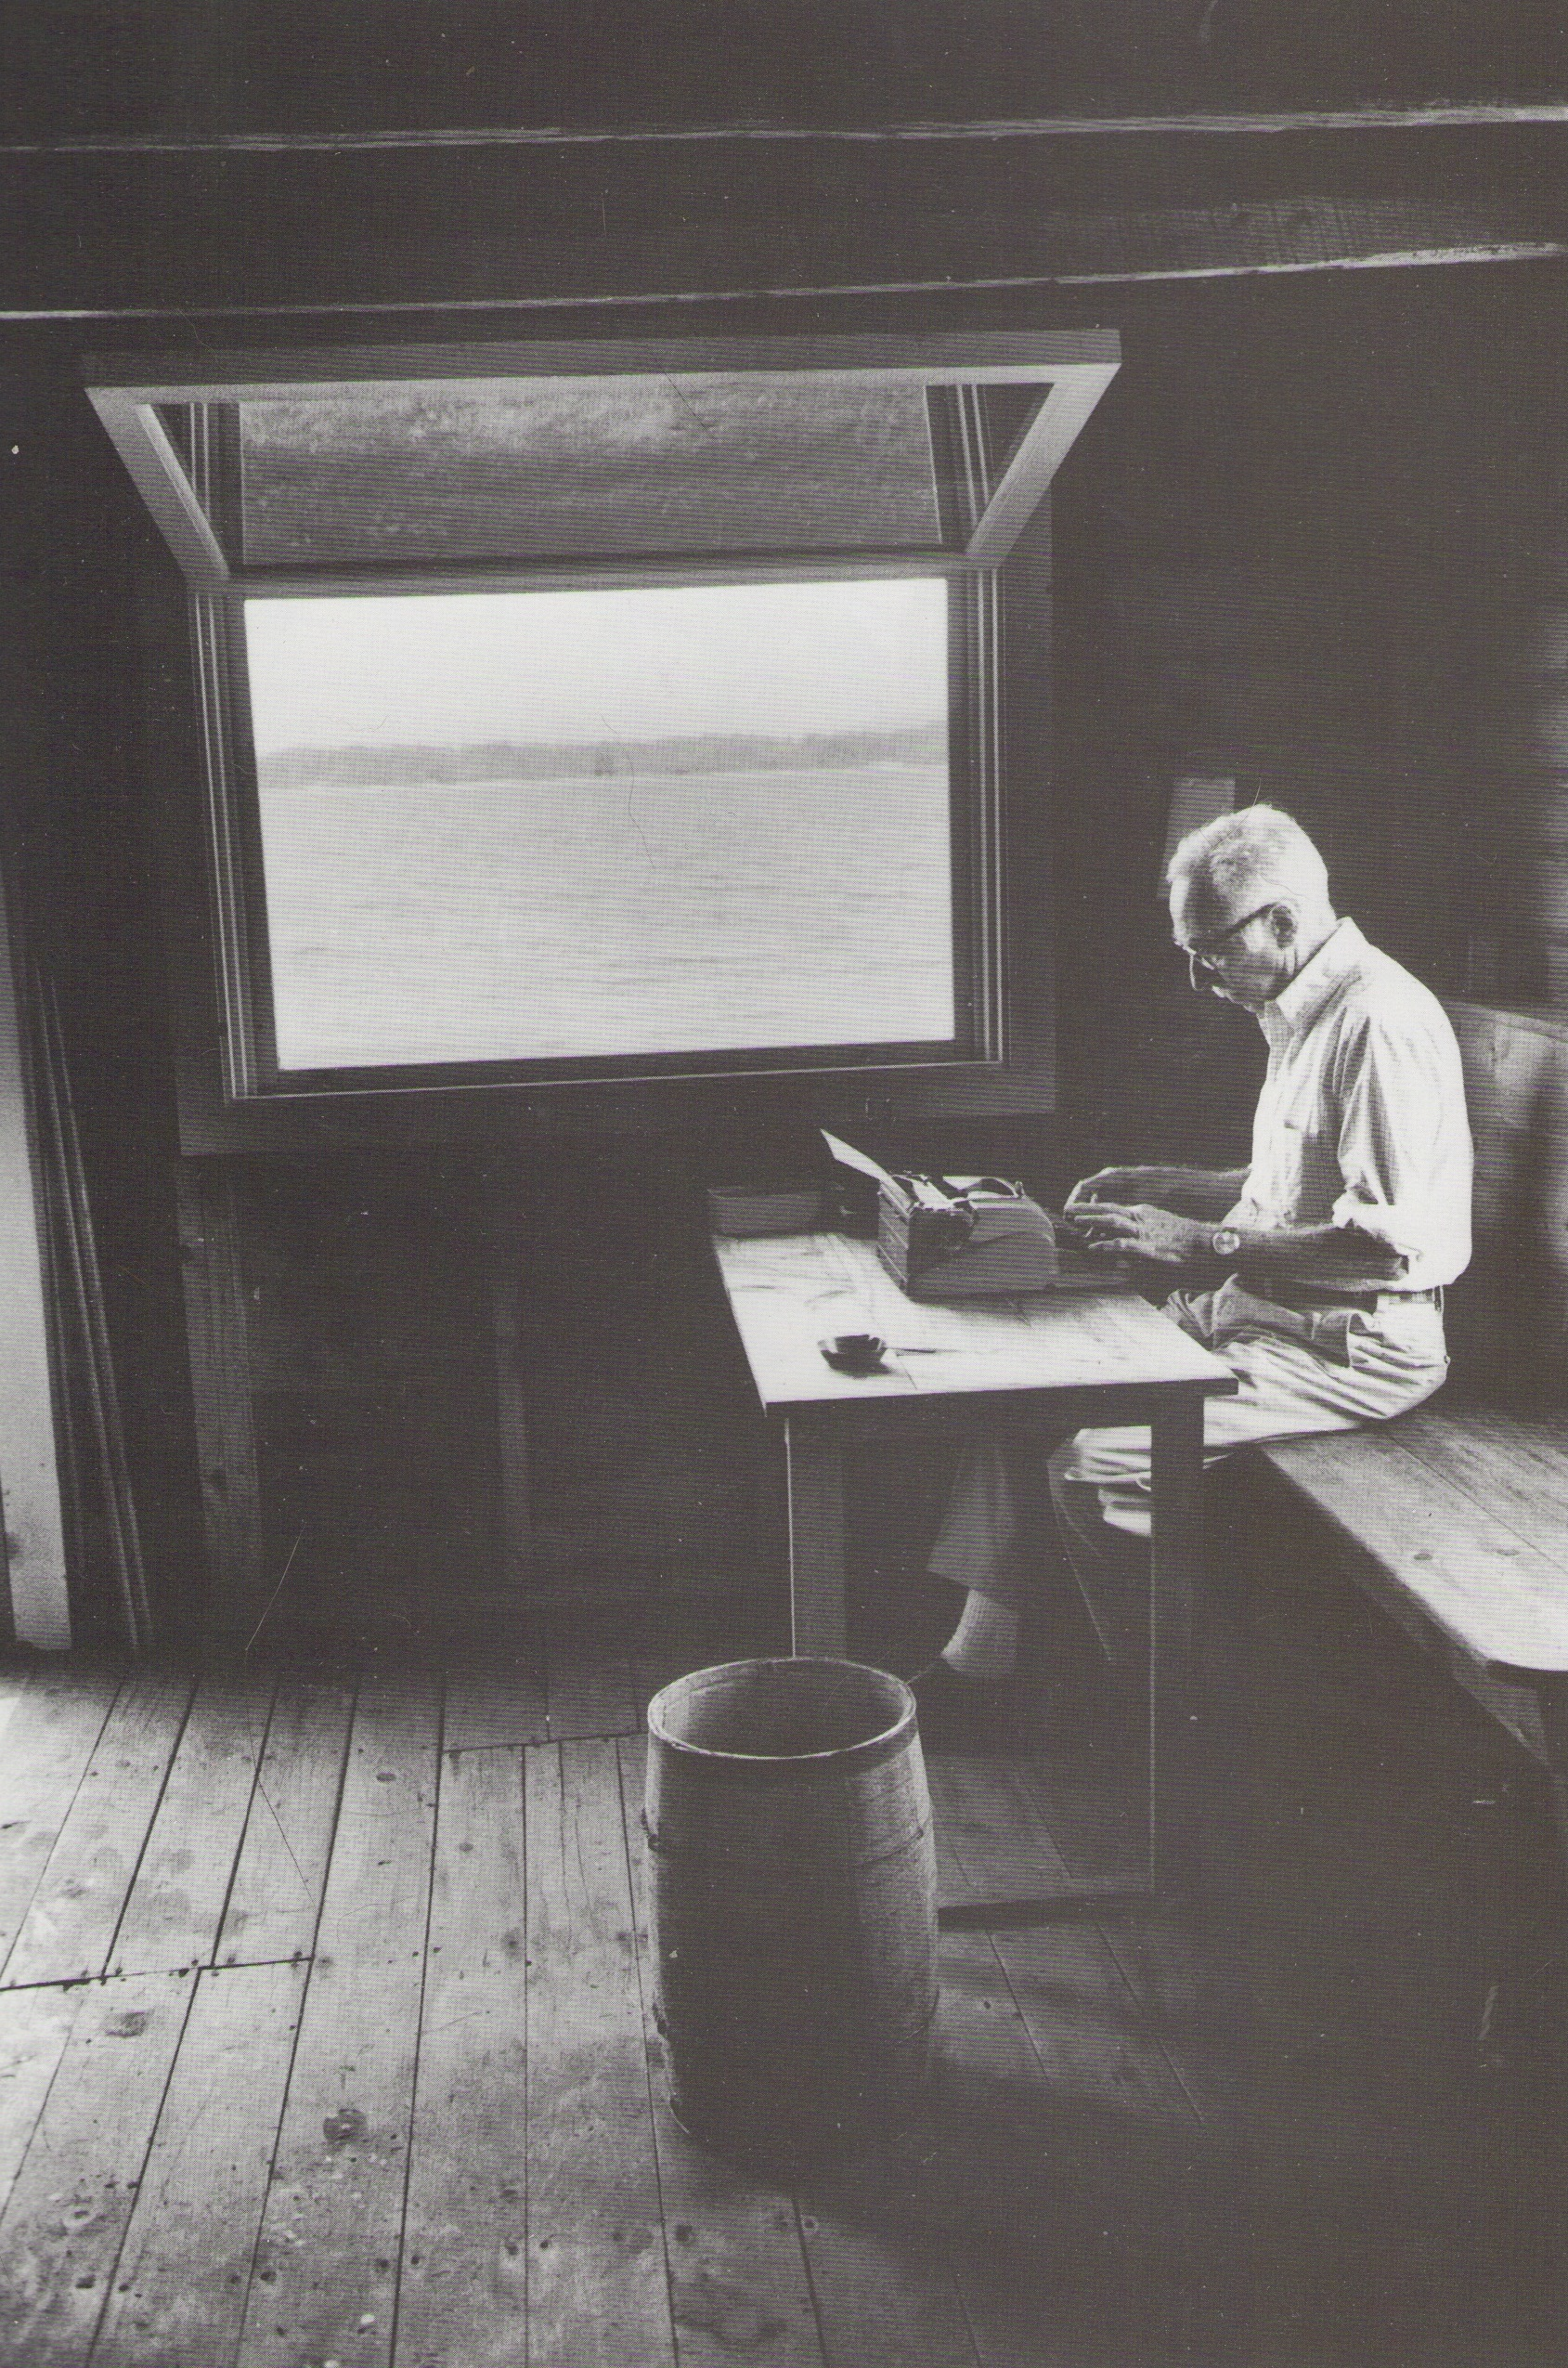 e b whites essays Eb white's essay, once more to the lake, ends with his feeling the chill of death this phrase is a haunting and initially abrupt end for the essay, especially since on first reading the essay seems to be merely a pleasant description of a lakeside vacation.